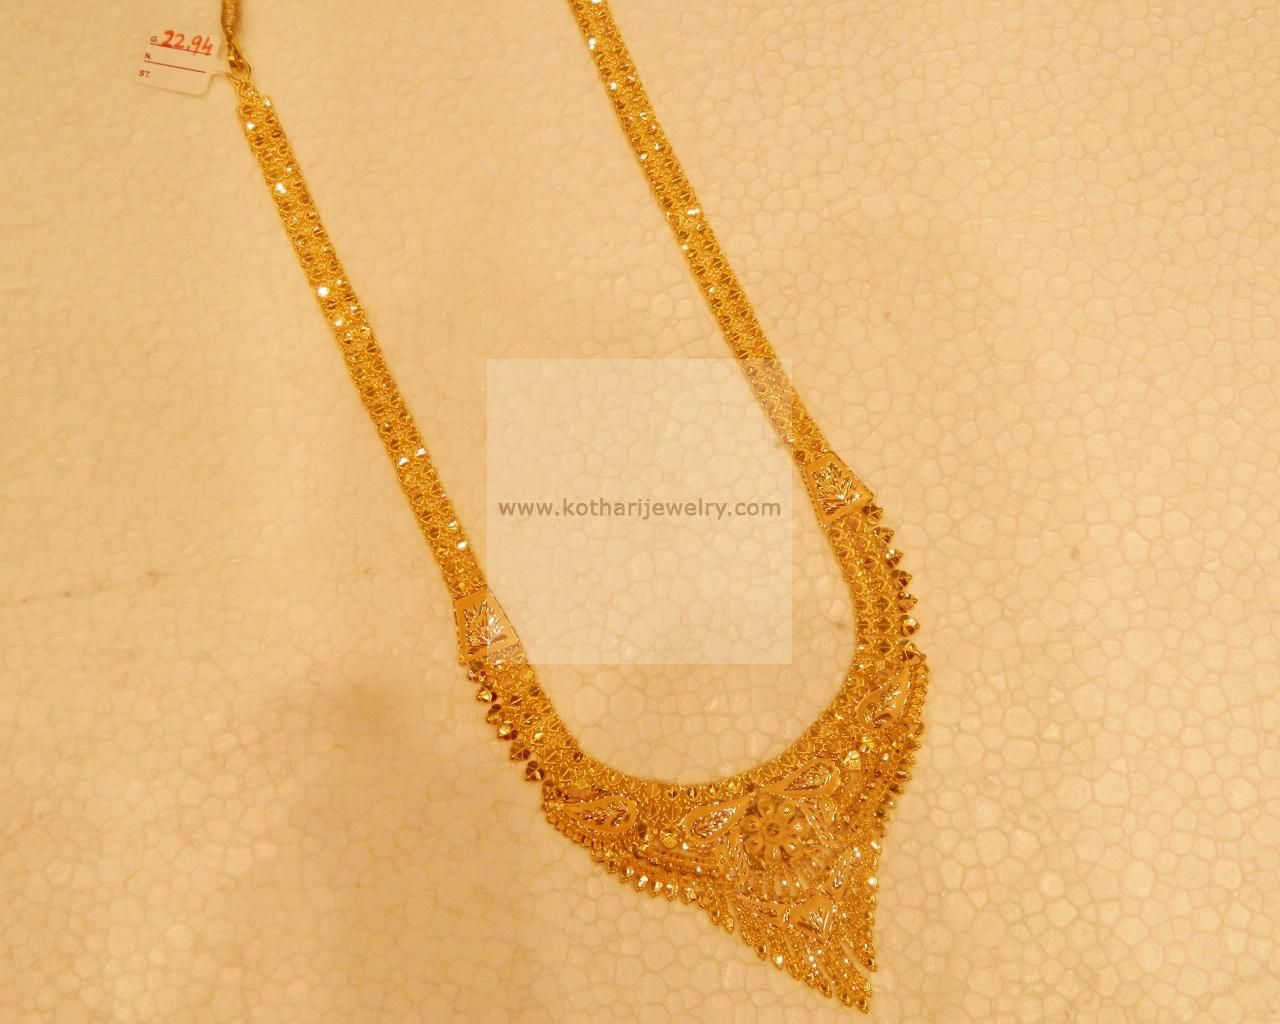 Gold long necklace design with price - Necklaces Harams Gold Jewellery Necklaces Harams Nk22942294 20 At Usd